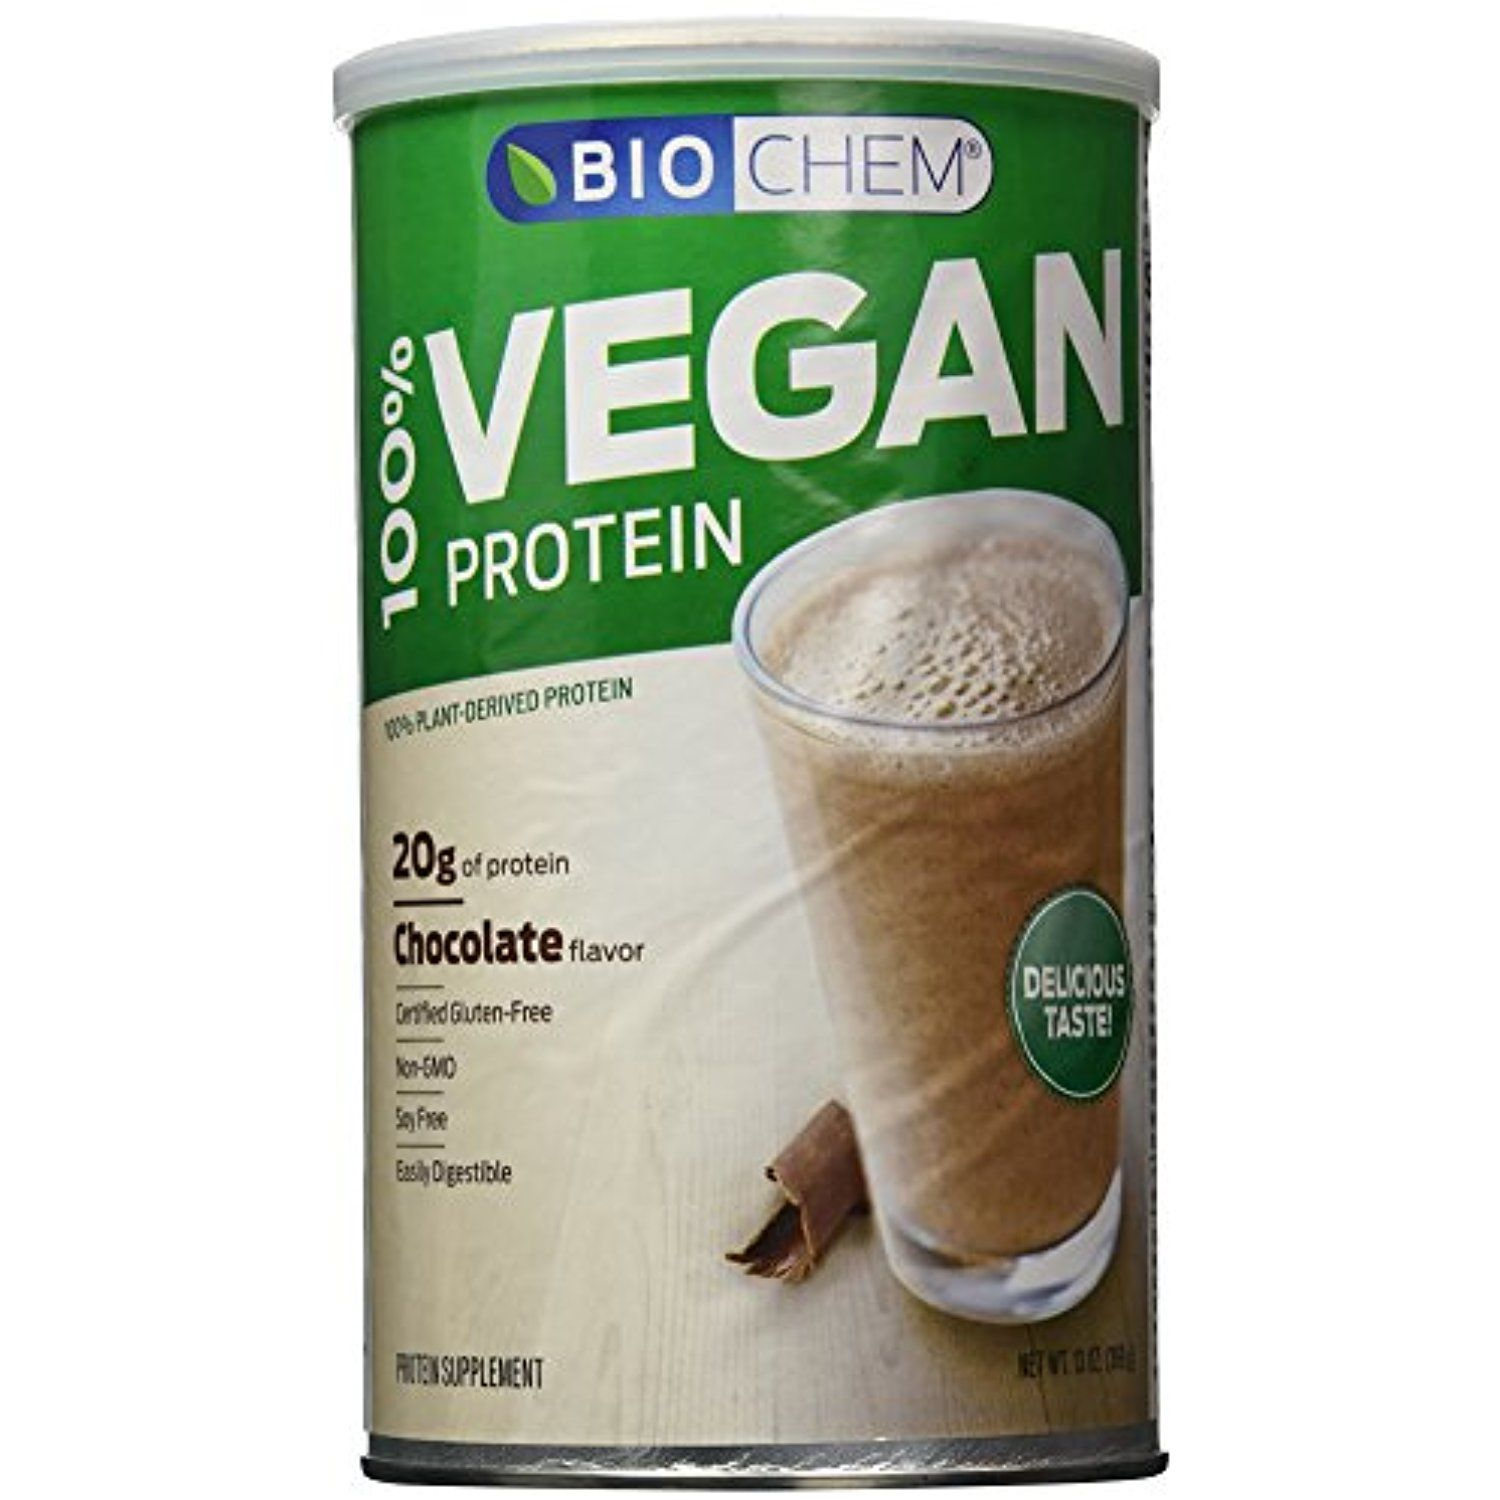 Biochem 100 Vegan Protein Powder, Chocolate, 13Ounce